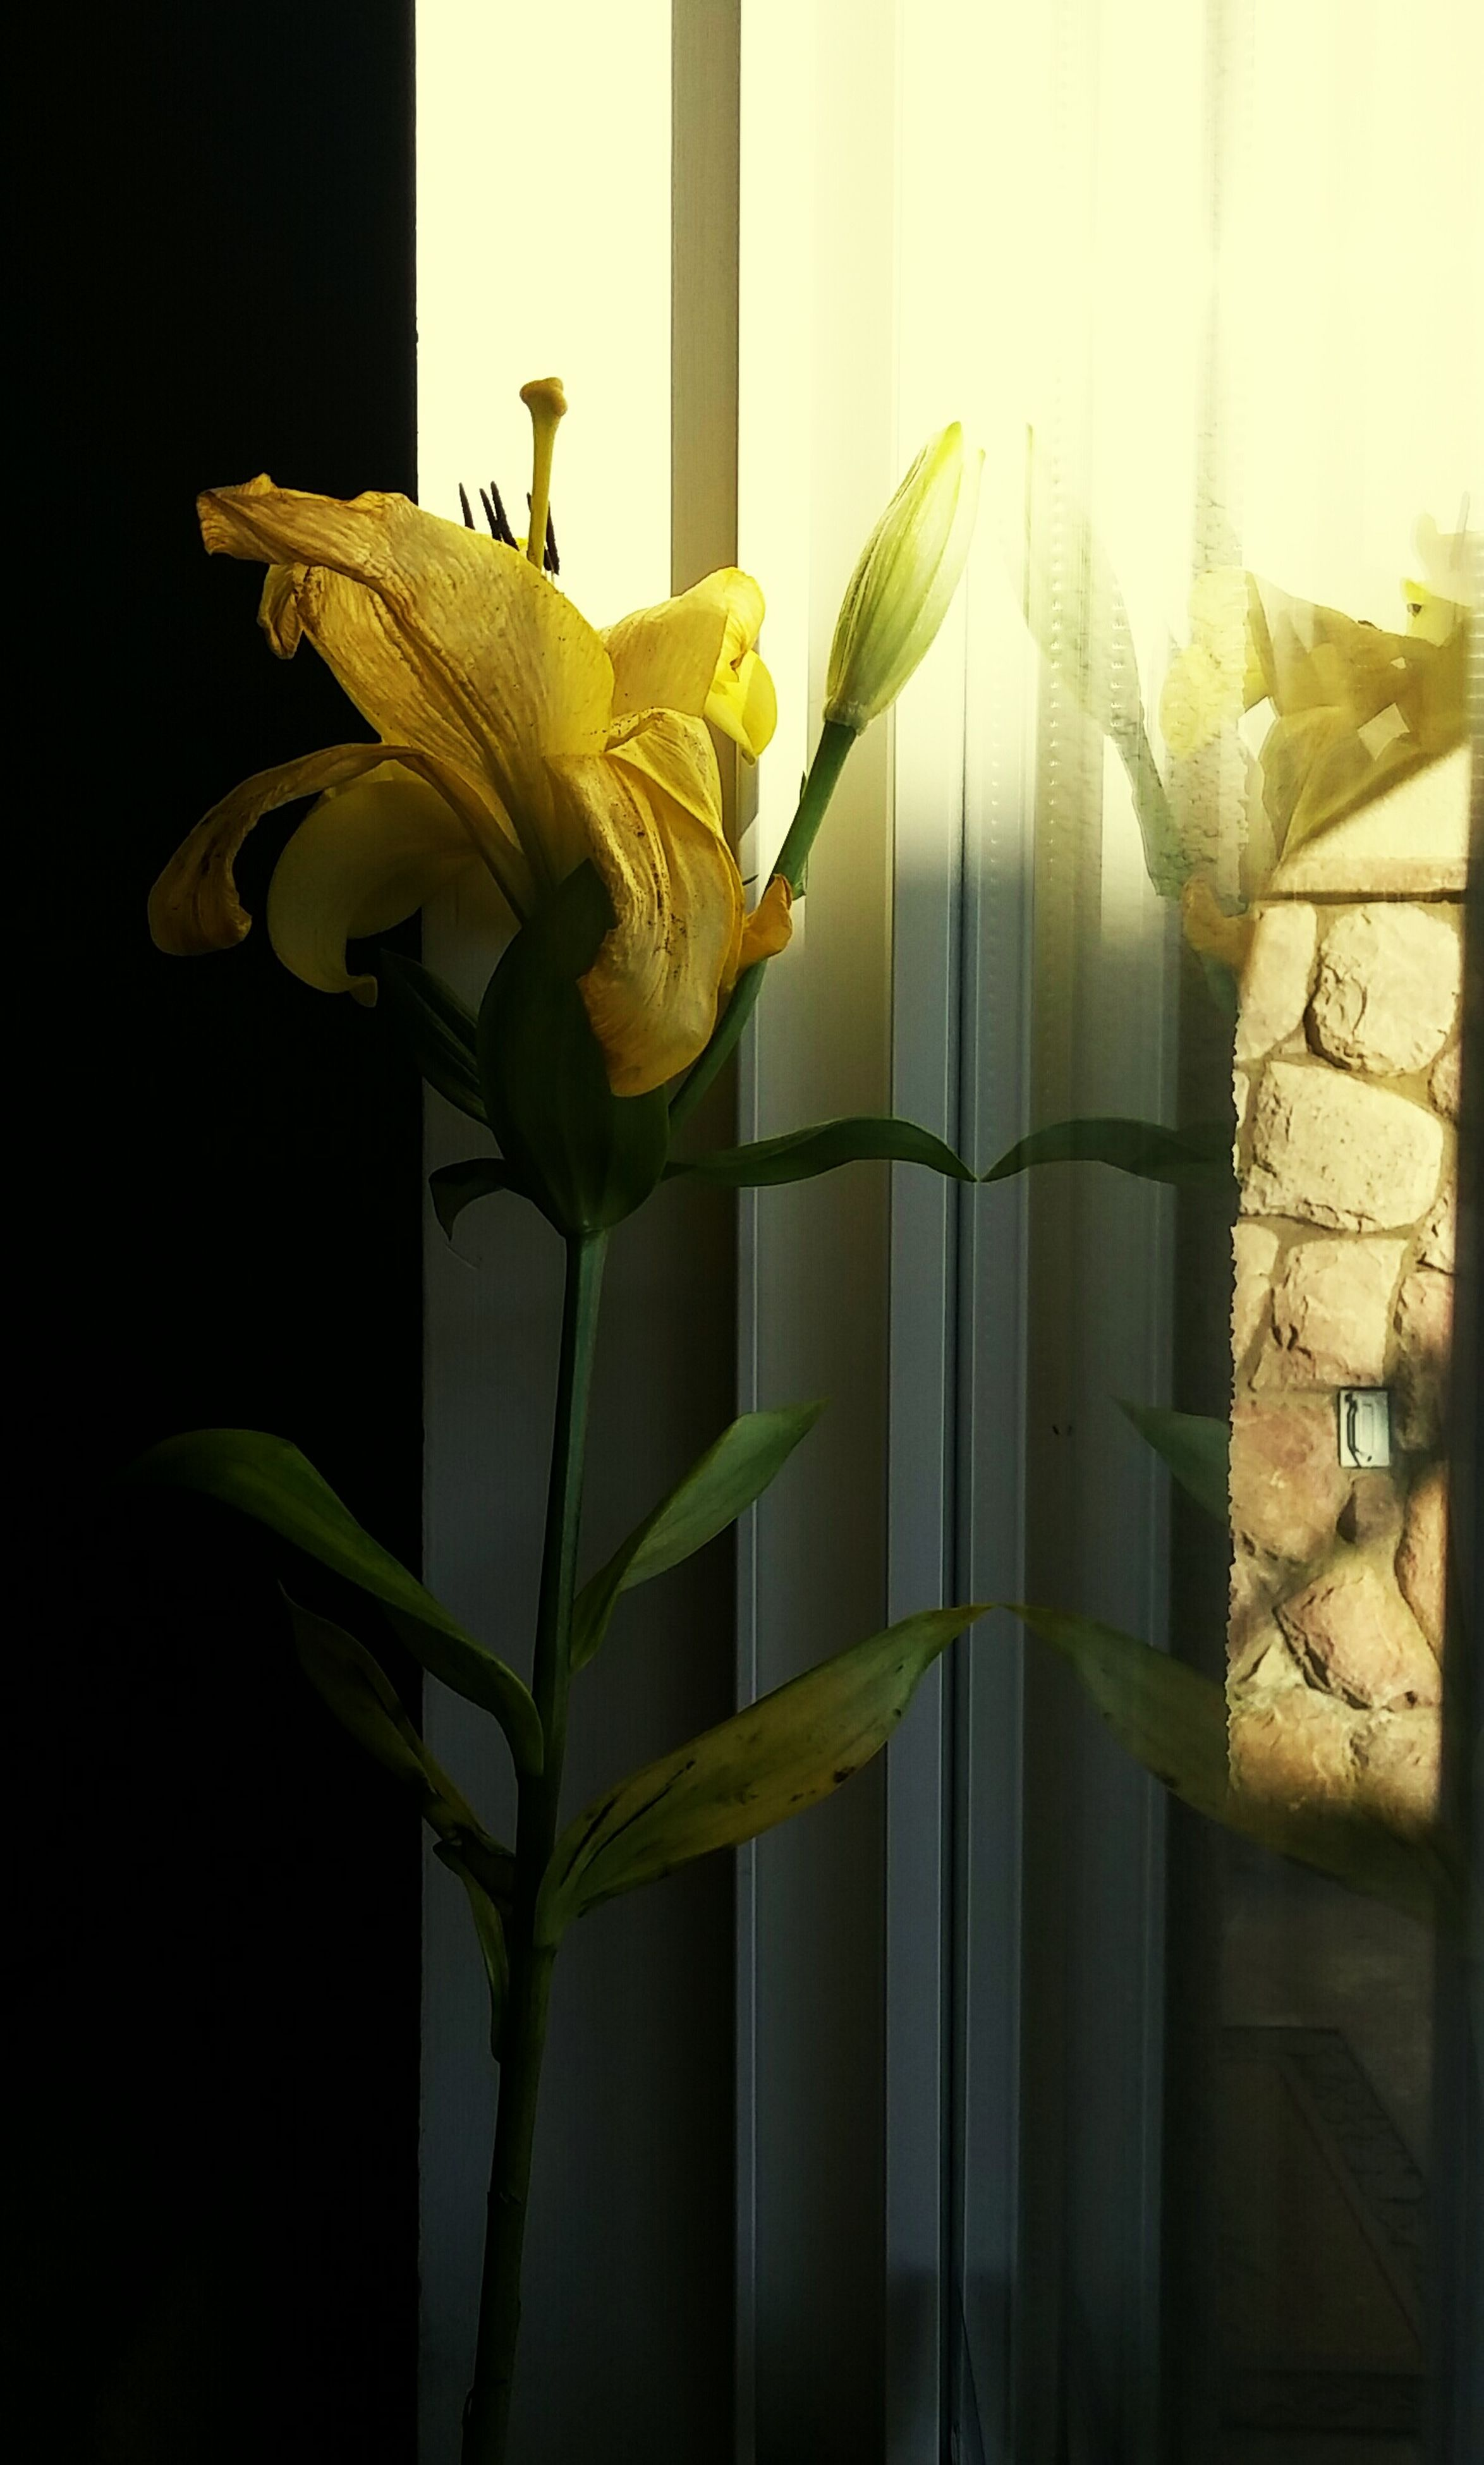 plant, growth, flower, close-up, stem, wall - building feature, fragility, leaf, nature, freshness, yellow, sunlight, no people, indoors, wall, focus on foreground, built structure, day, fence, petal